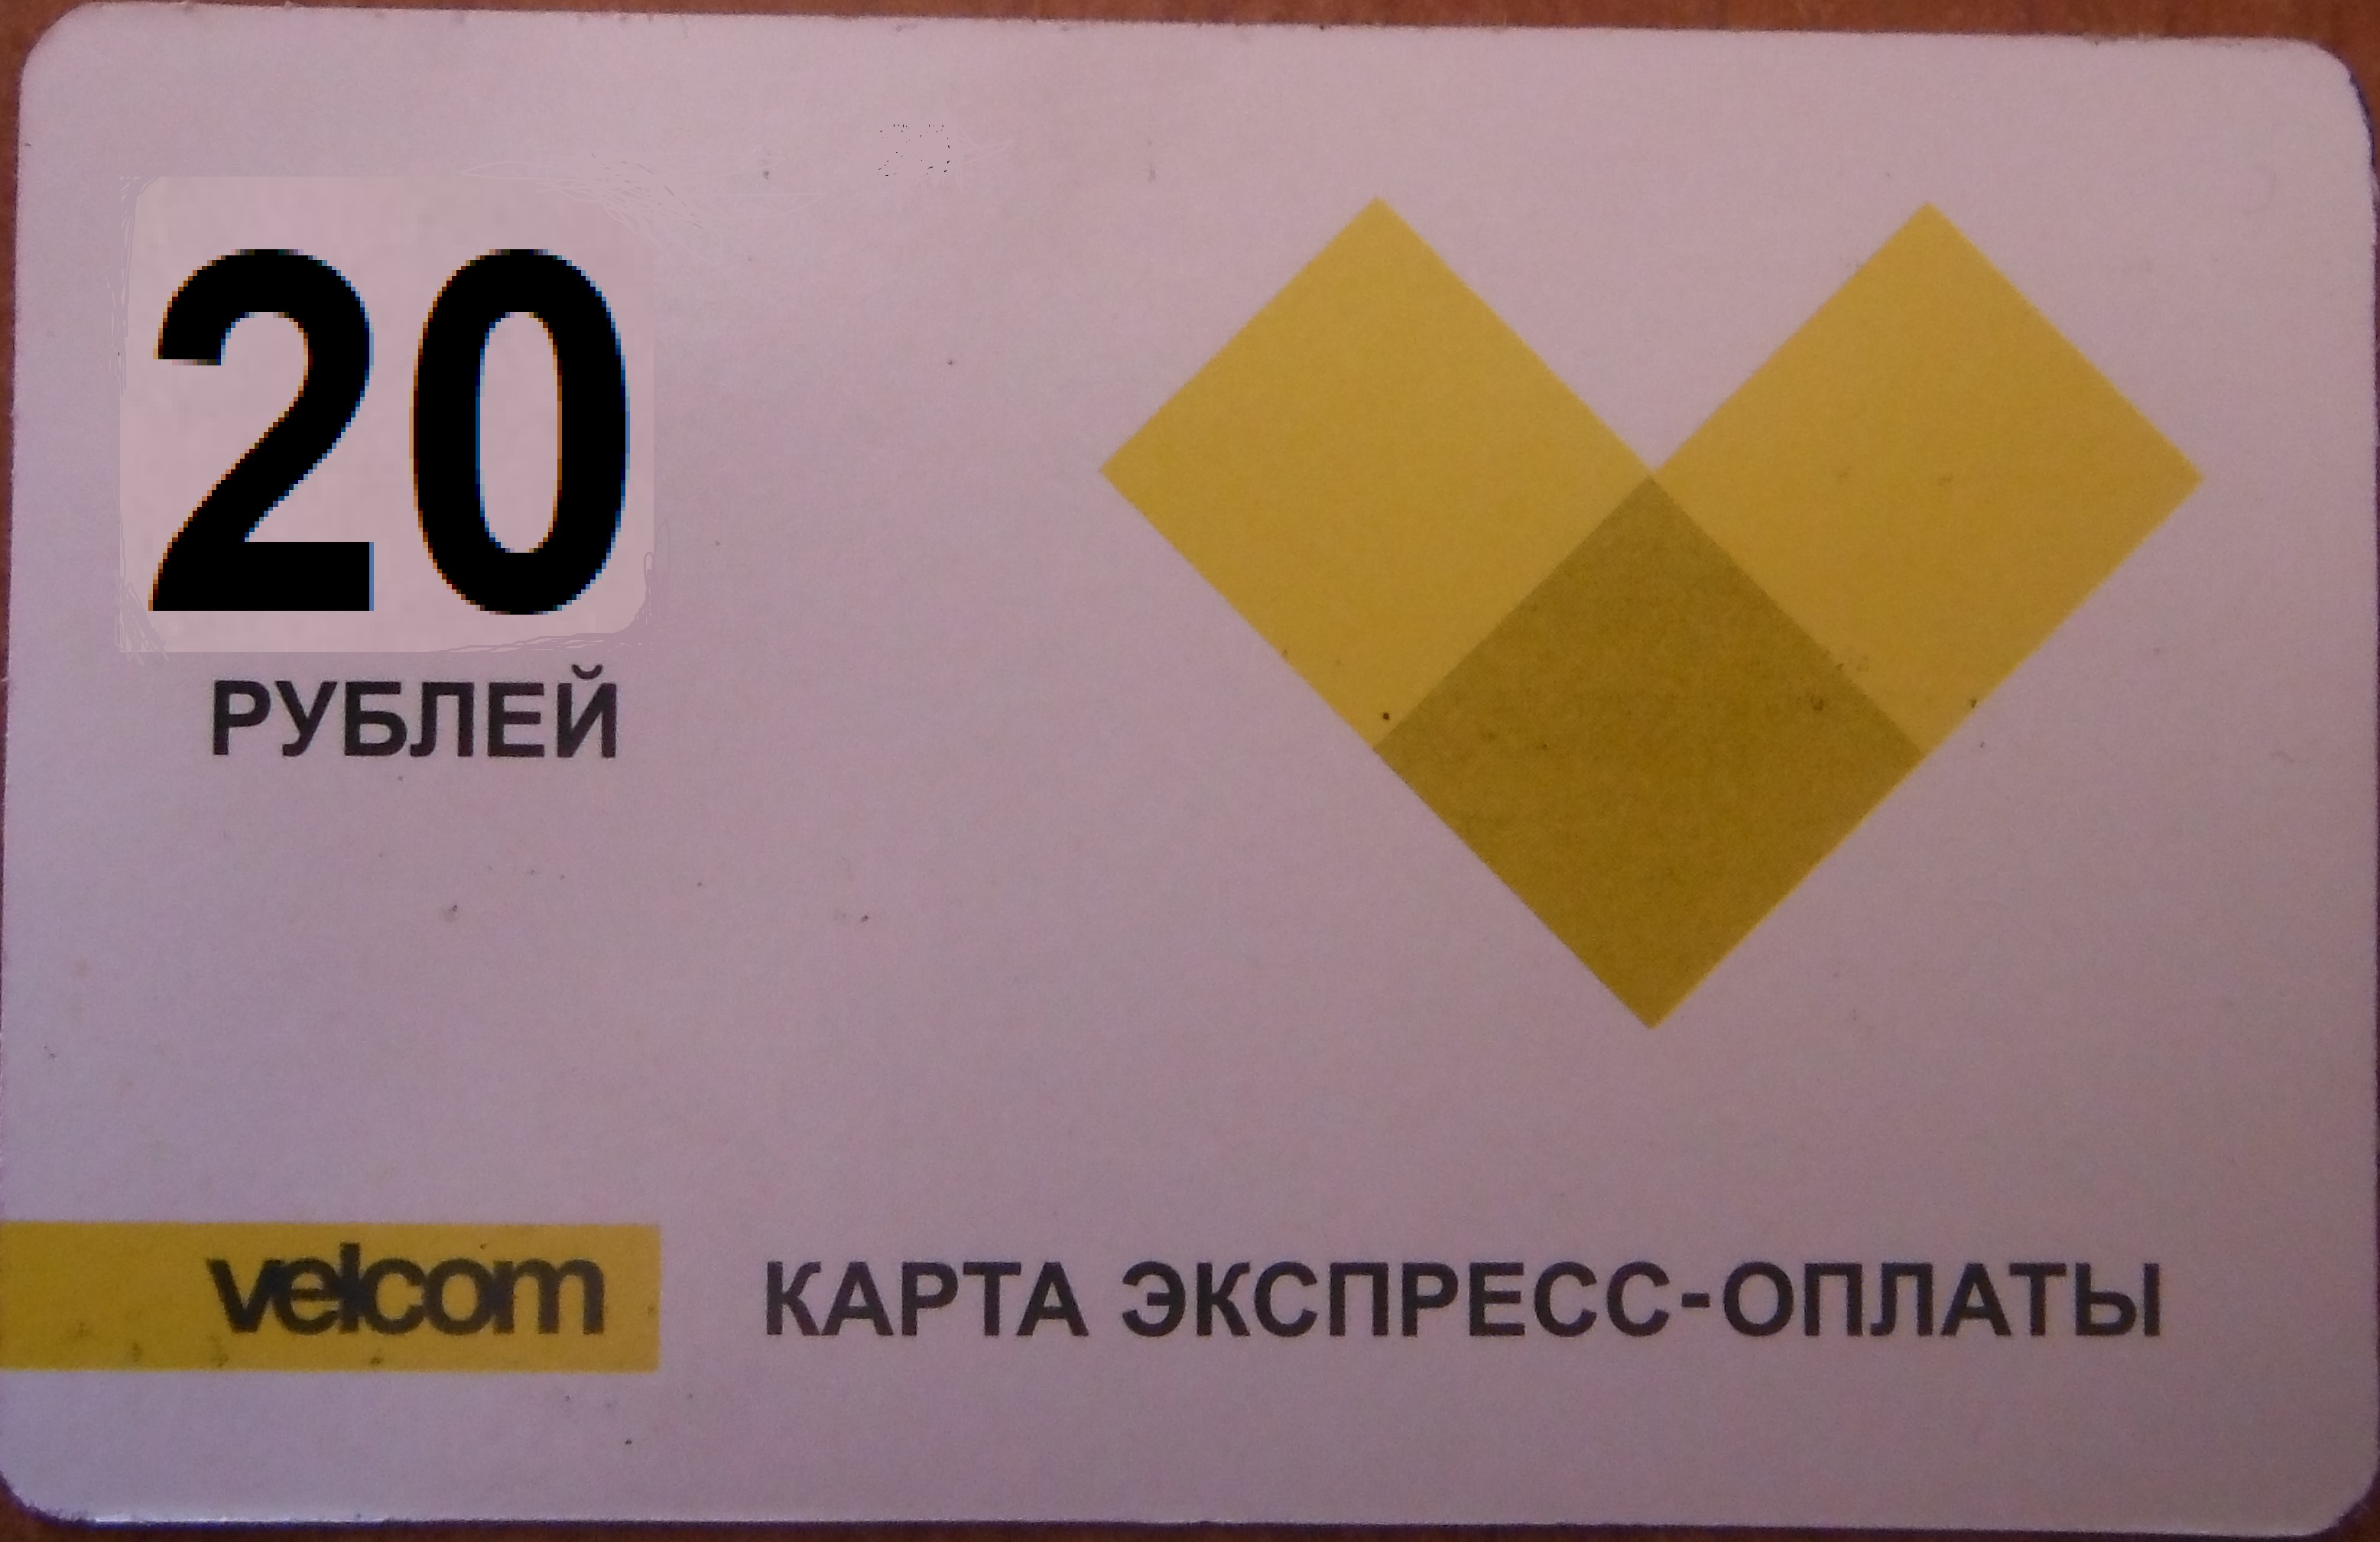 Velcom (Belarus) - amount of 20 BYN